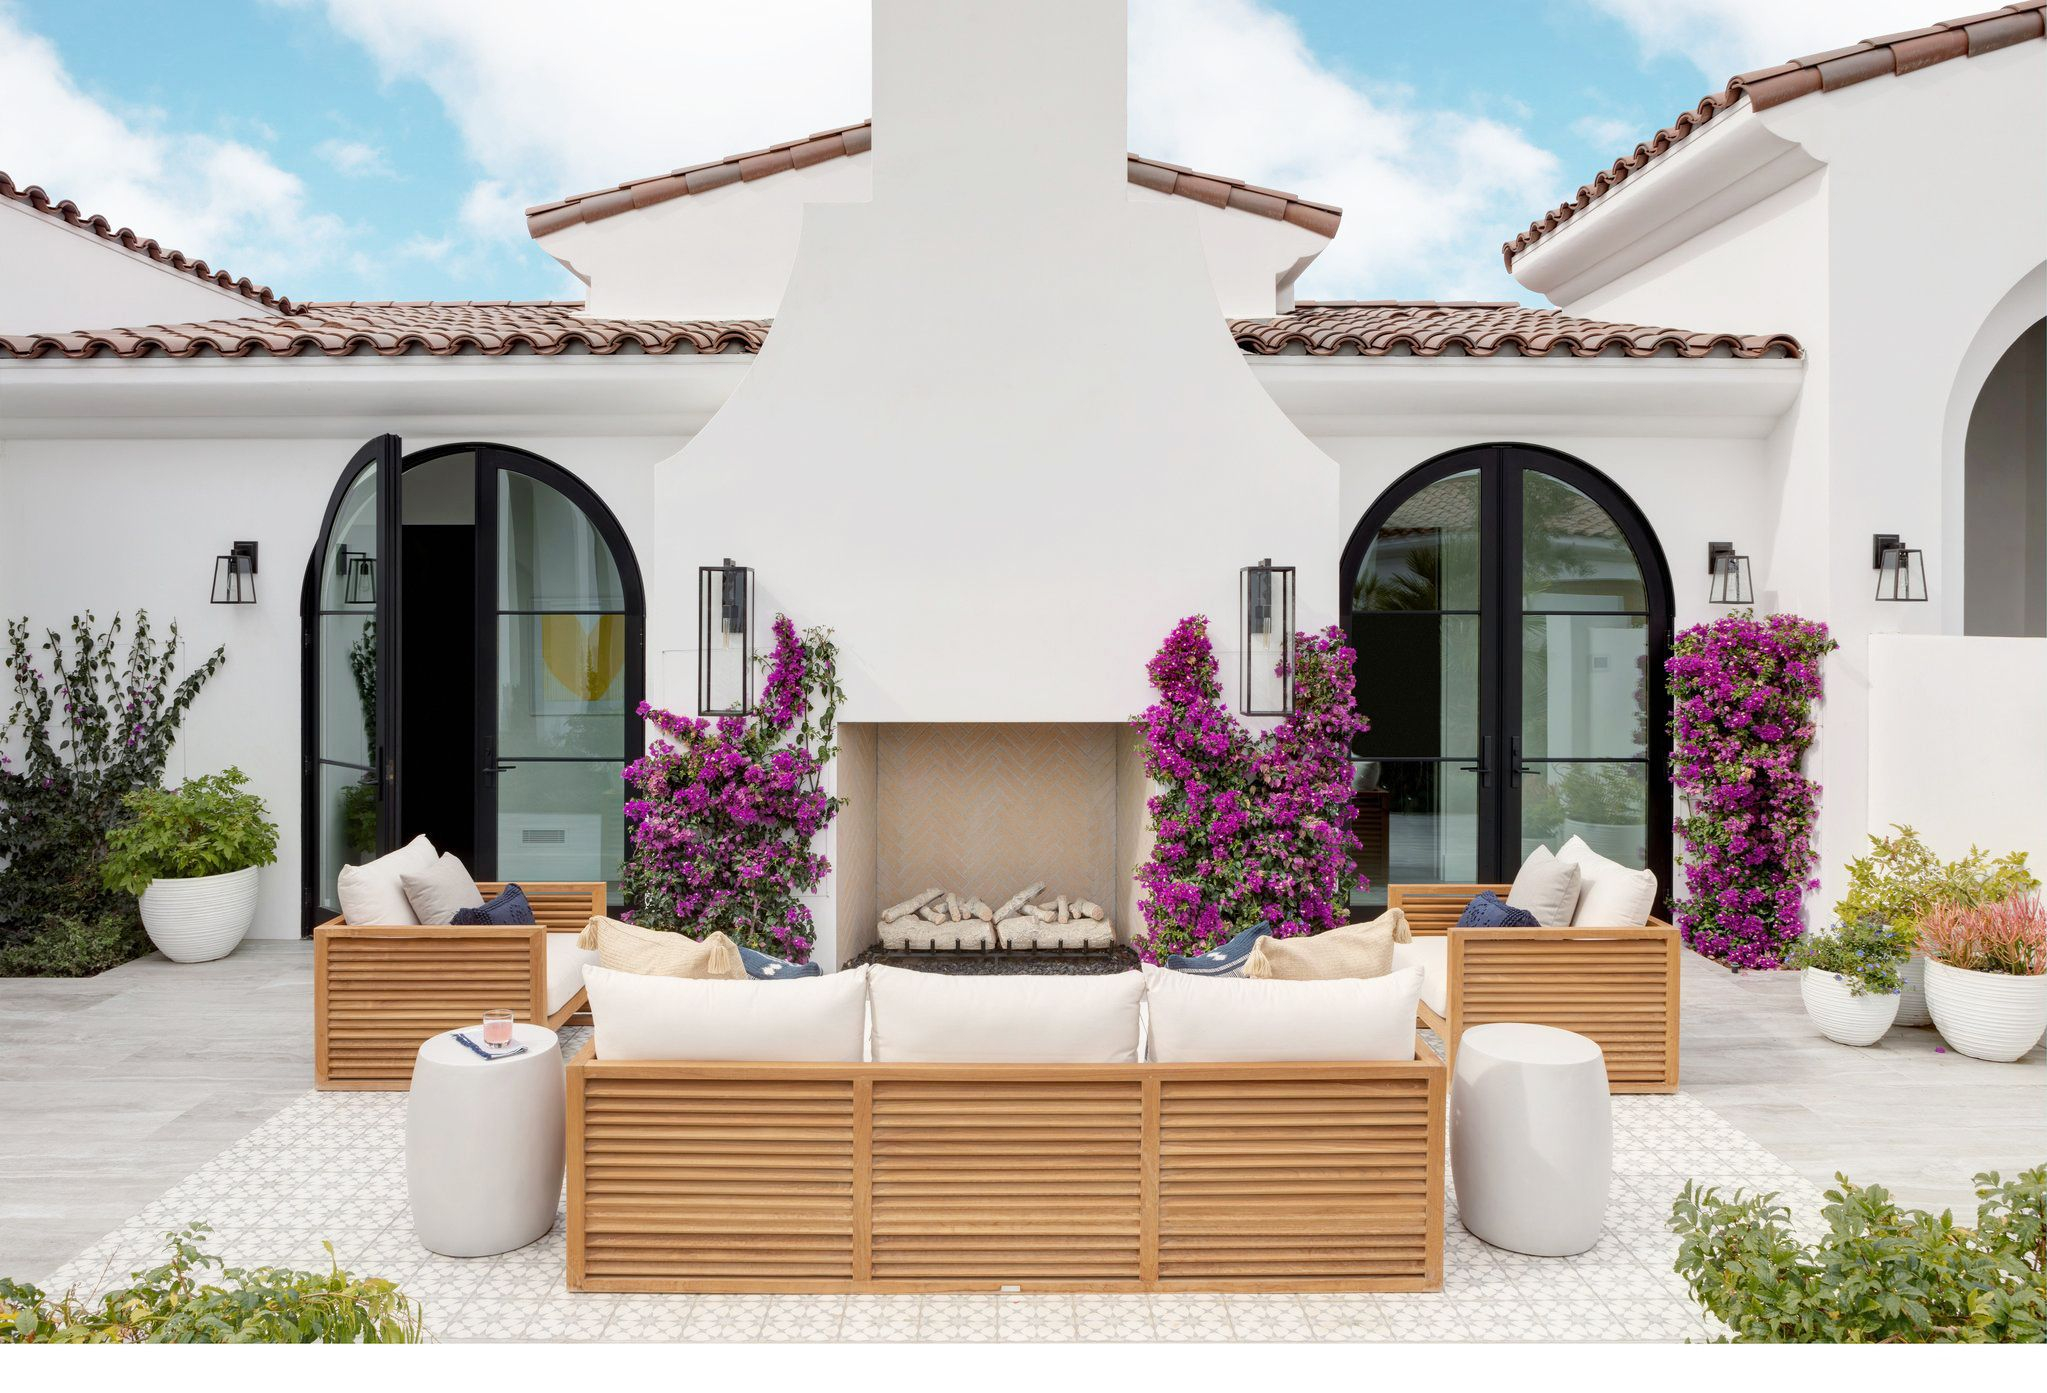 40 Best Patio Ideas For 2019 Stylish Outdoor Patio Design Ideas inside Patio Ideas For Backyard